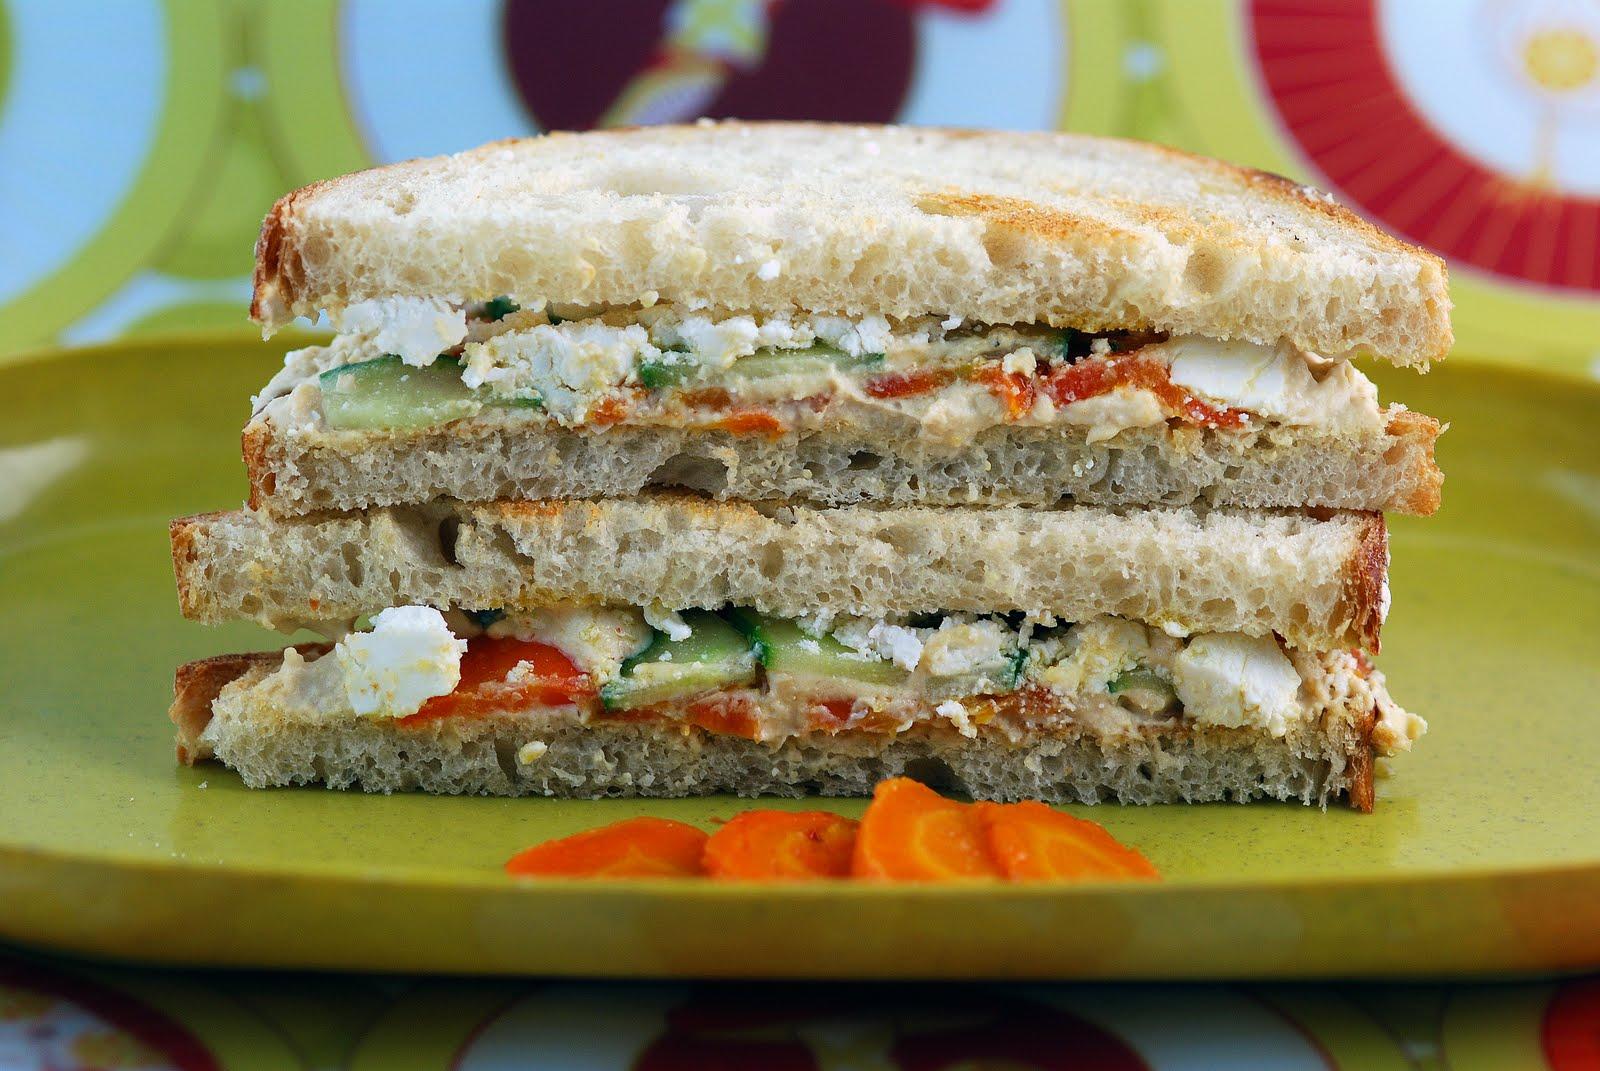 Vegetable Matter: Moroccan Carrot and Hummus Sandwich